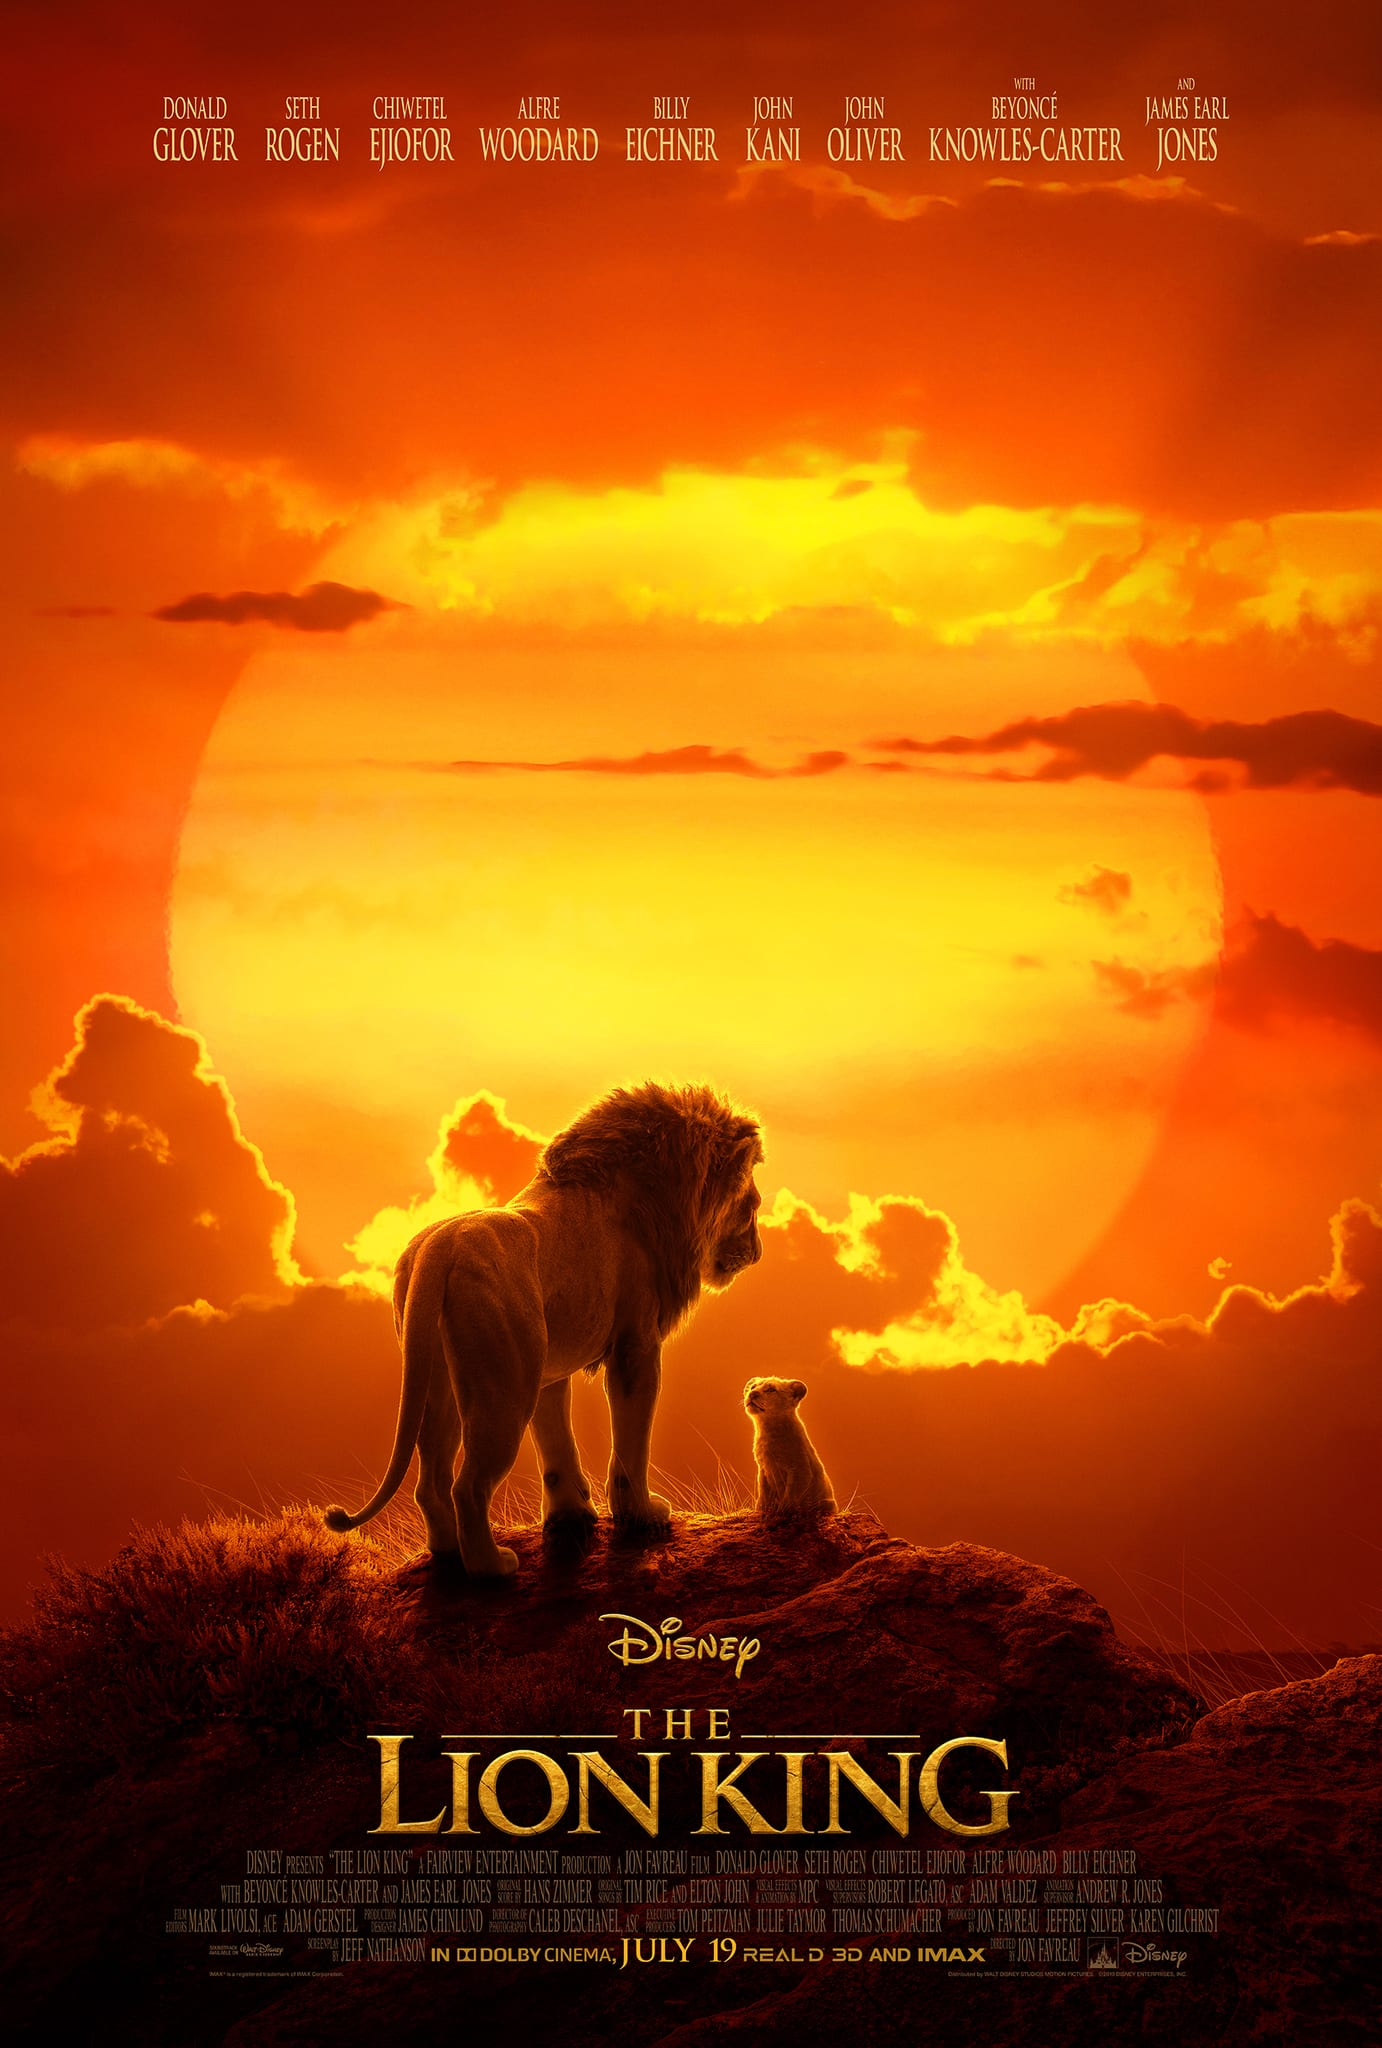 Free Movie Ticket for Disney's The Lion King ($10 Fandango Promo Code) w/ Purchase of 3 Big G Cereals at Kroger family stores